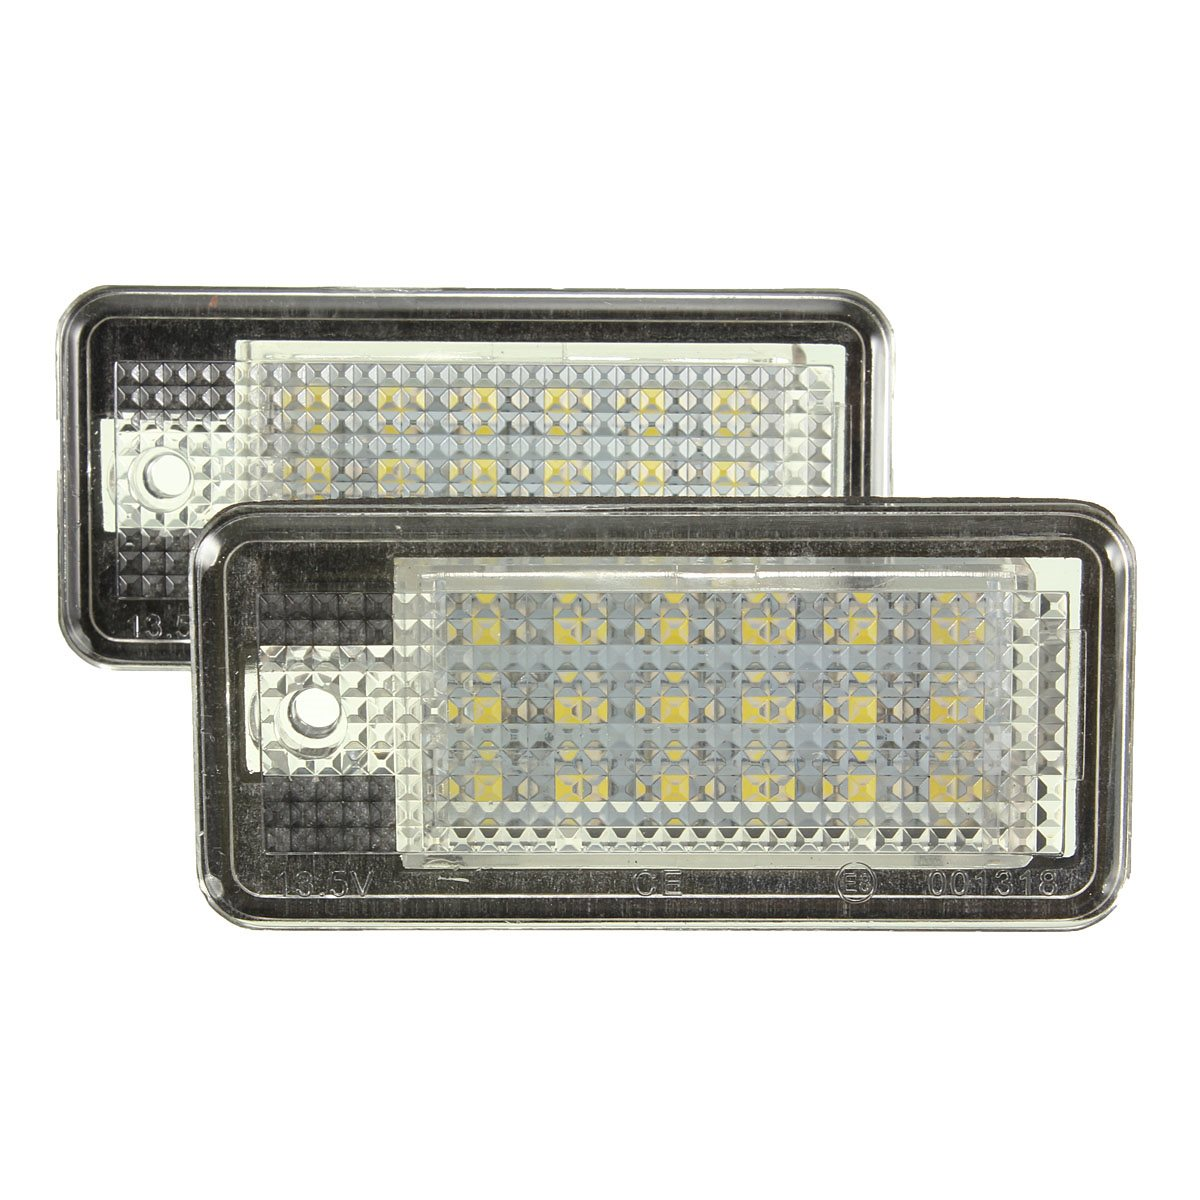 New 2 White Car Error 18 LED License Number Plate Light Lamp For Audi A3 S3 A4 S4 B6 B7 A6 S6 A8 Q7 vodool 1 pair led car license plate lights 6500k vehicle lamps car styling for audi a3 a4 b6 b7 a6 a8 q7 a5